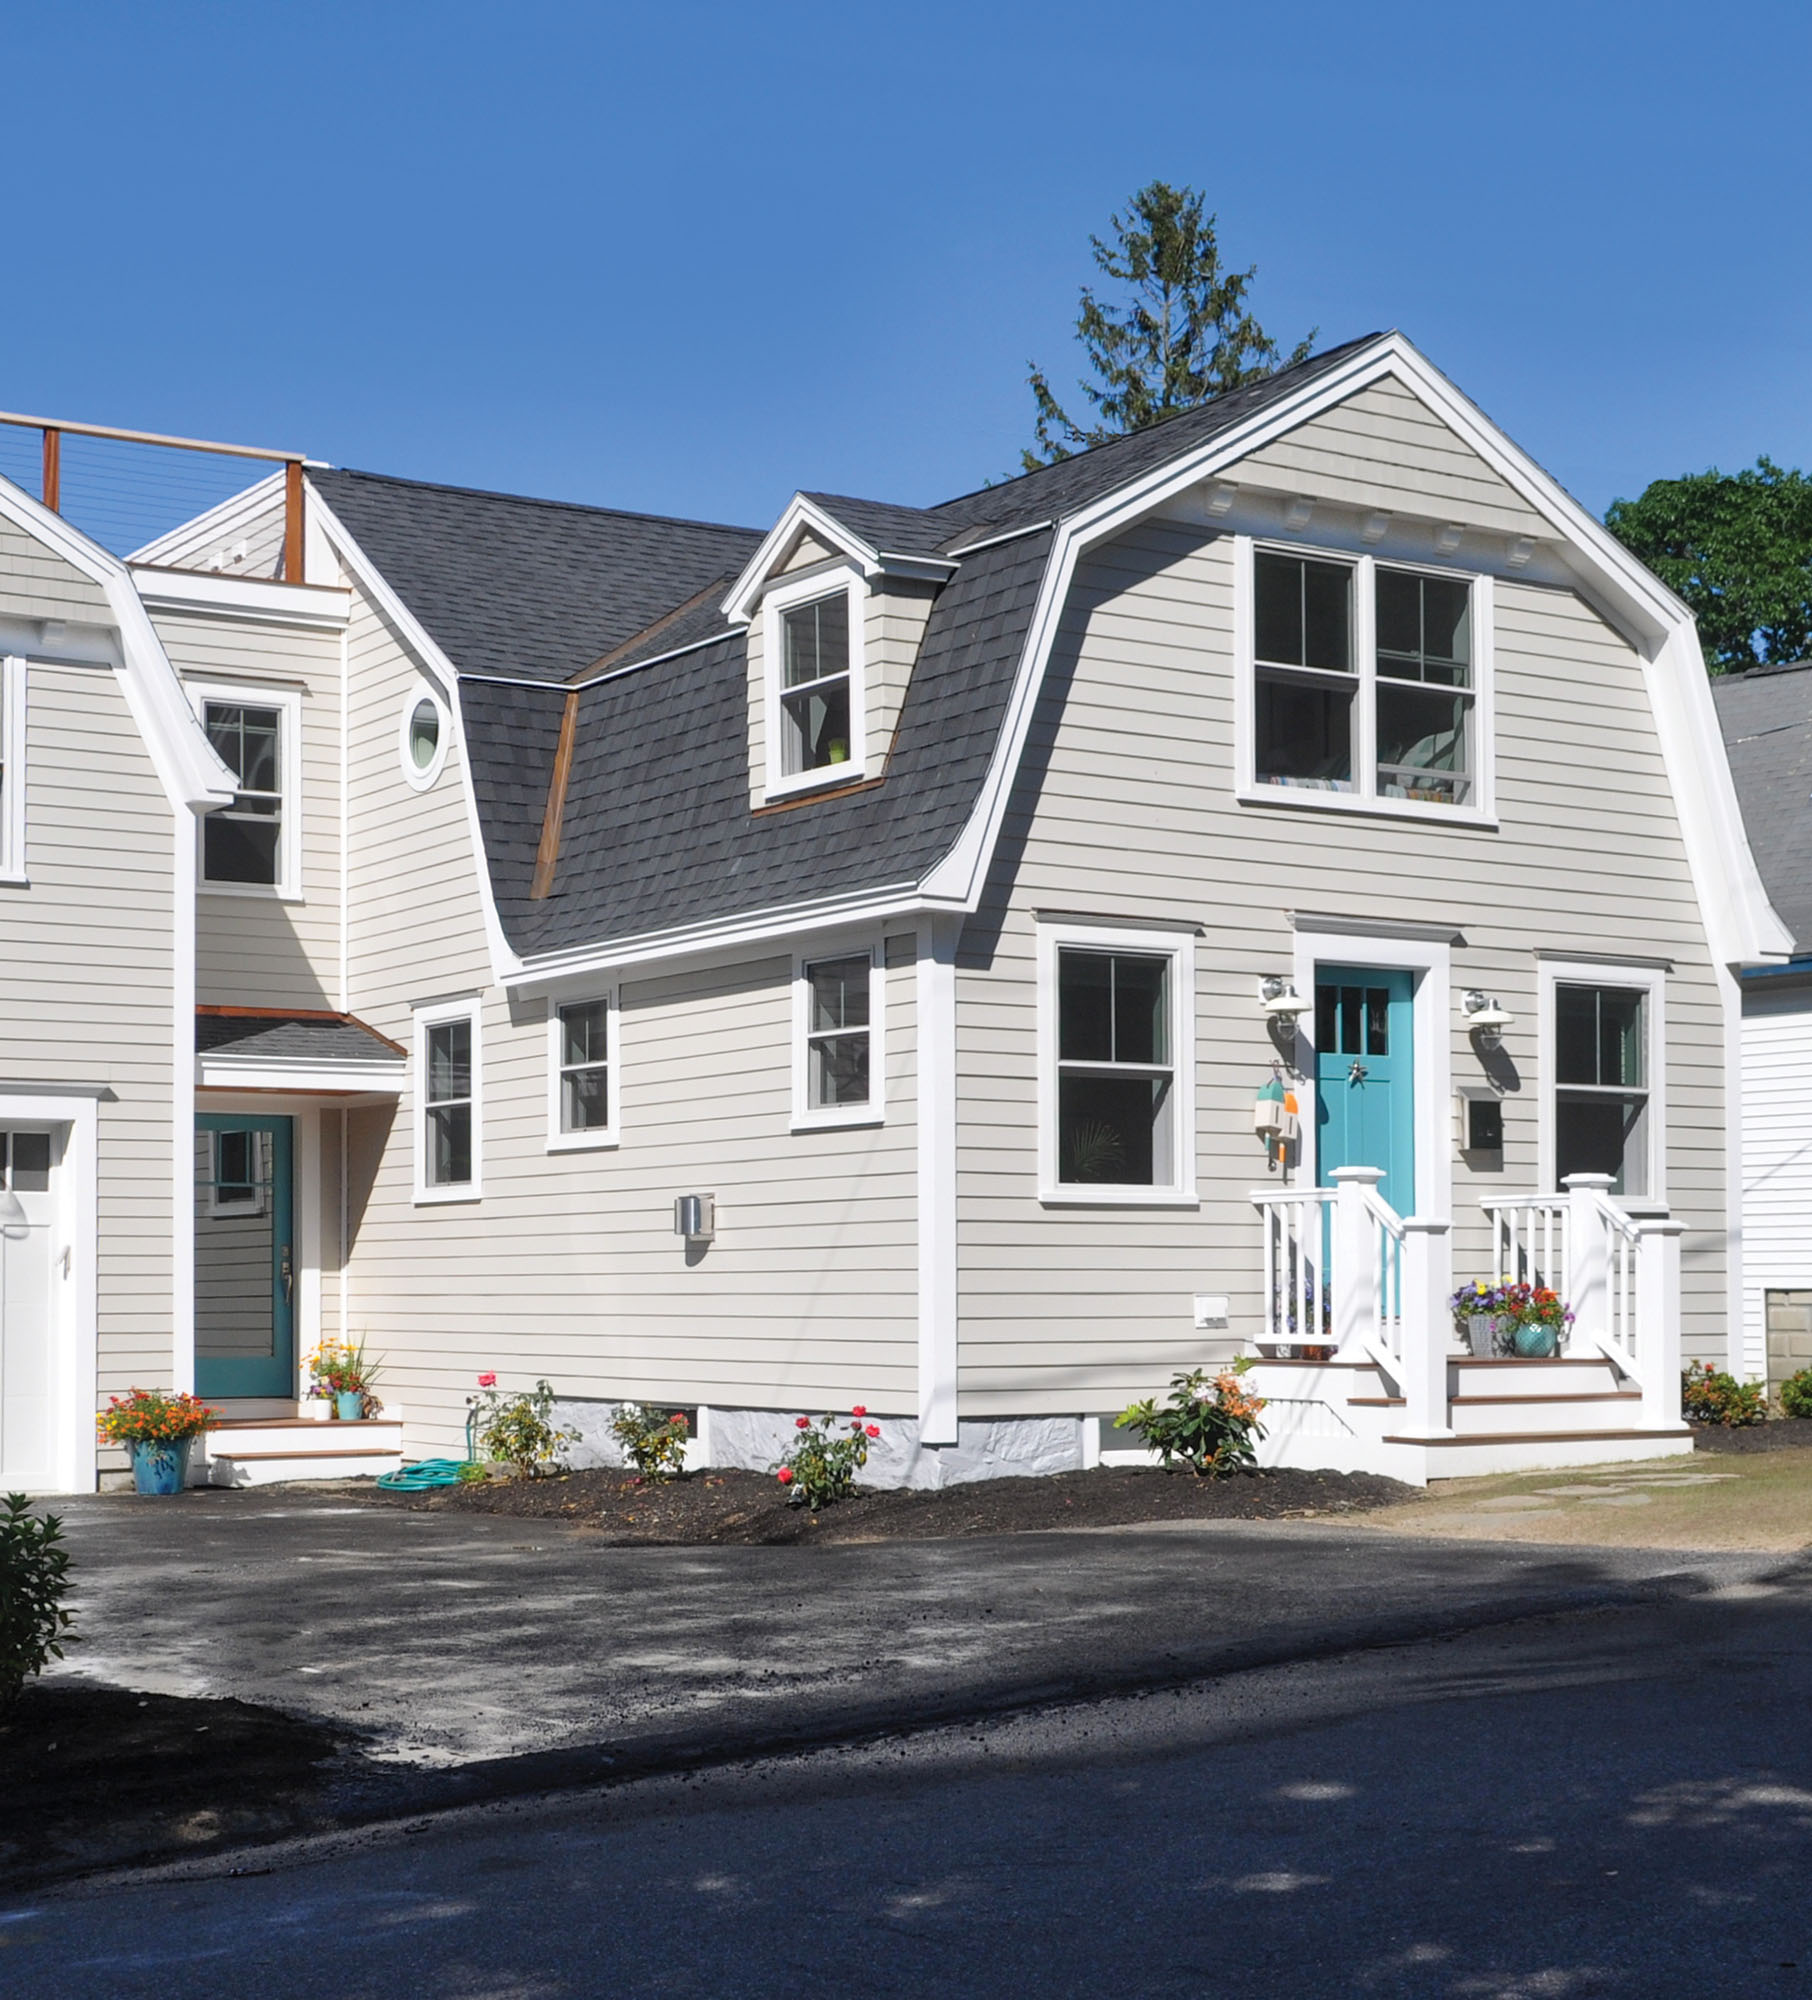 1906 renovated gambrel